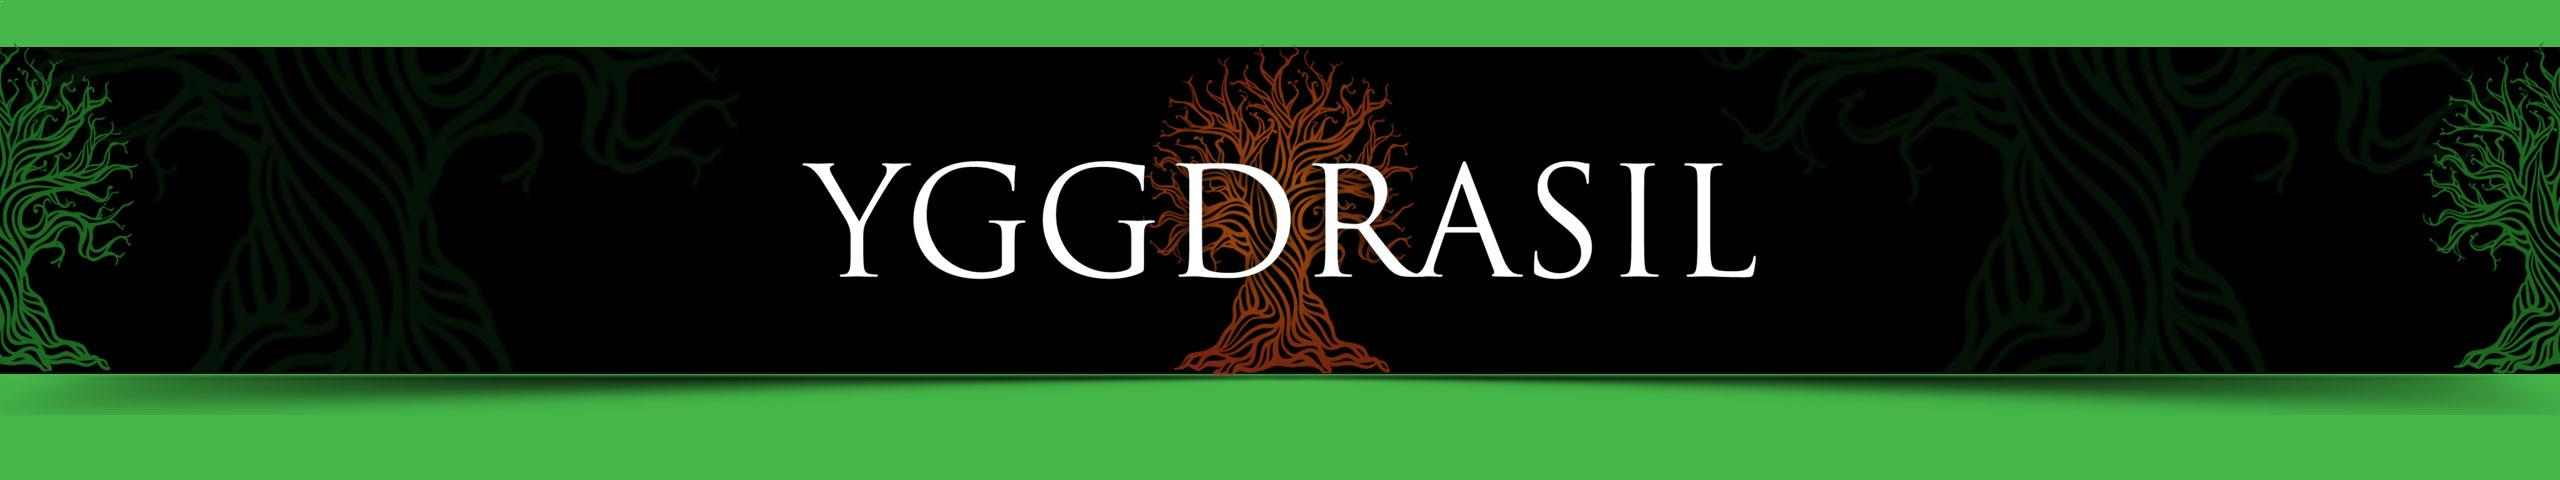 Yggdrasil Gaming - Multabafta.com cazino jocuri developer slider